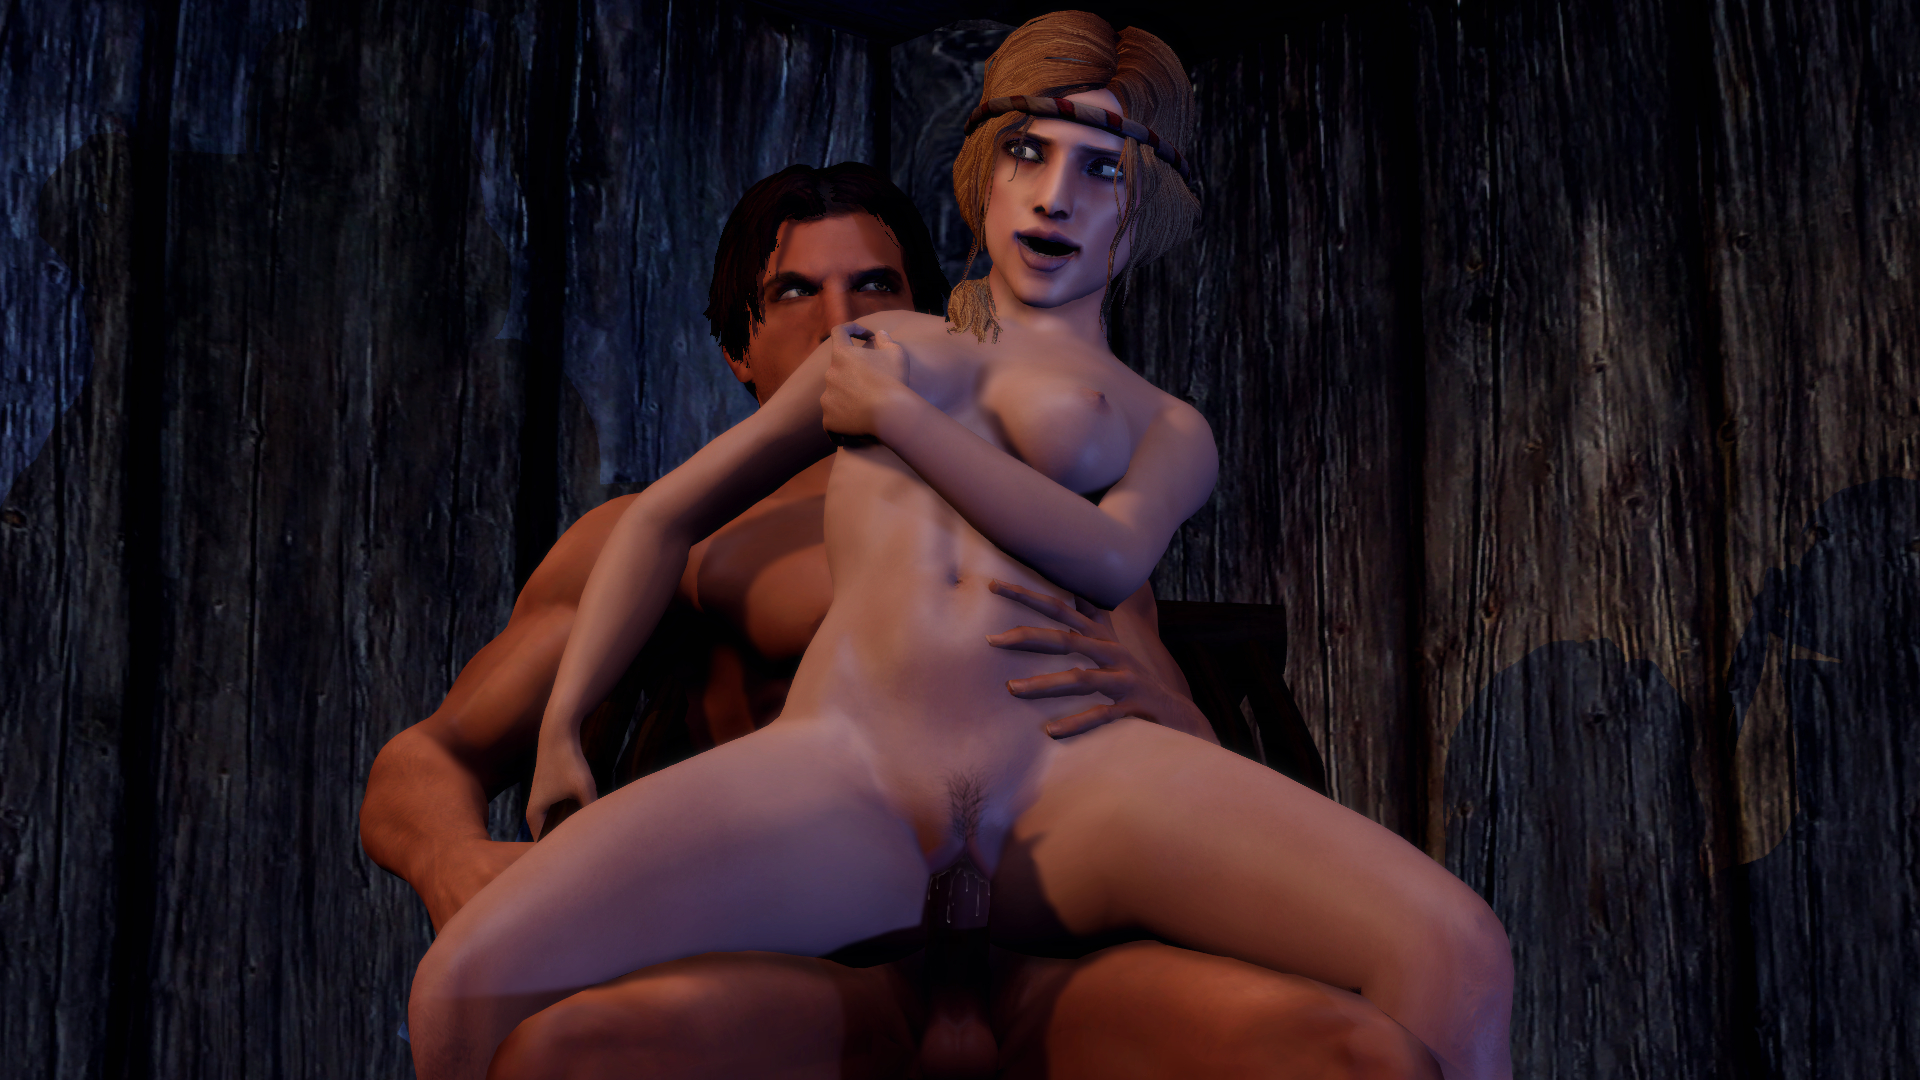 Assasin creed 3 porn porno picture